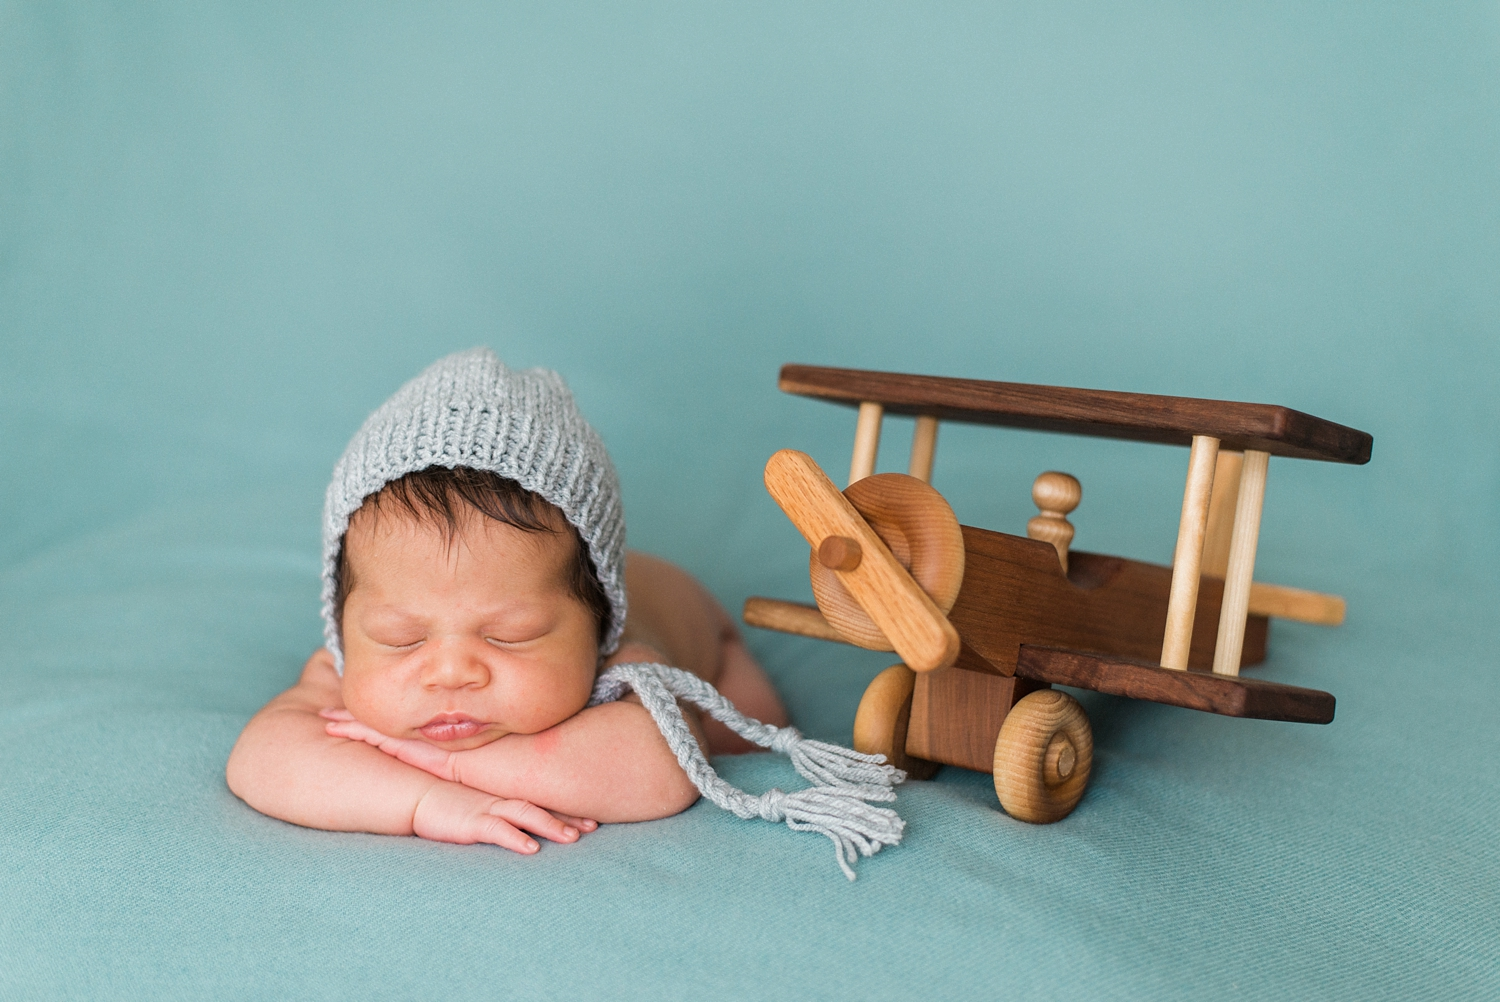 best-newborn-photographer-portland-oregon-sleeping-baby-aviator-knit-hat-airplane-shelley-marie-photography-9.jpg